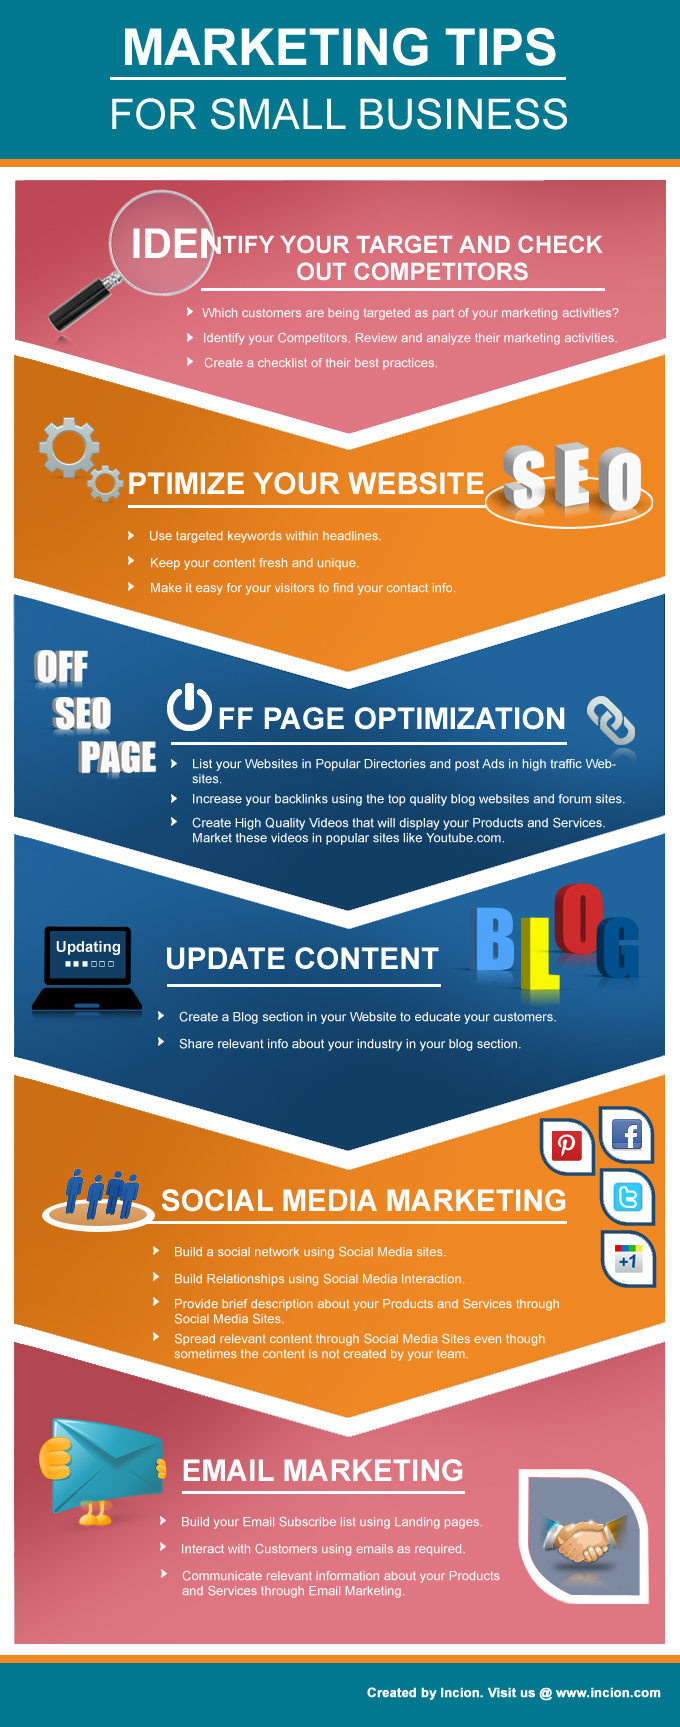 Small Business Marketing Infographic